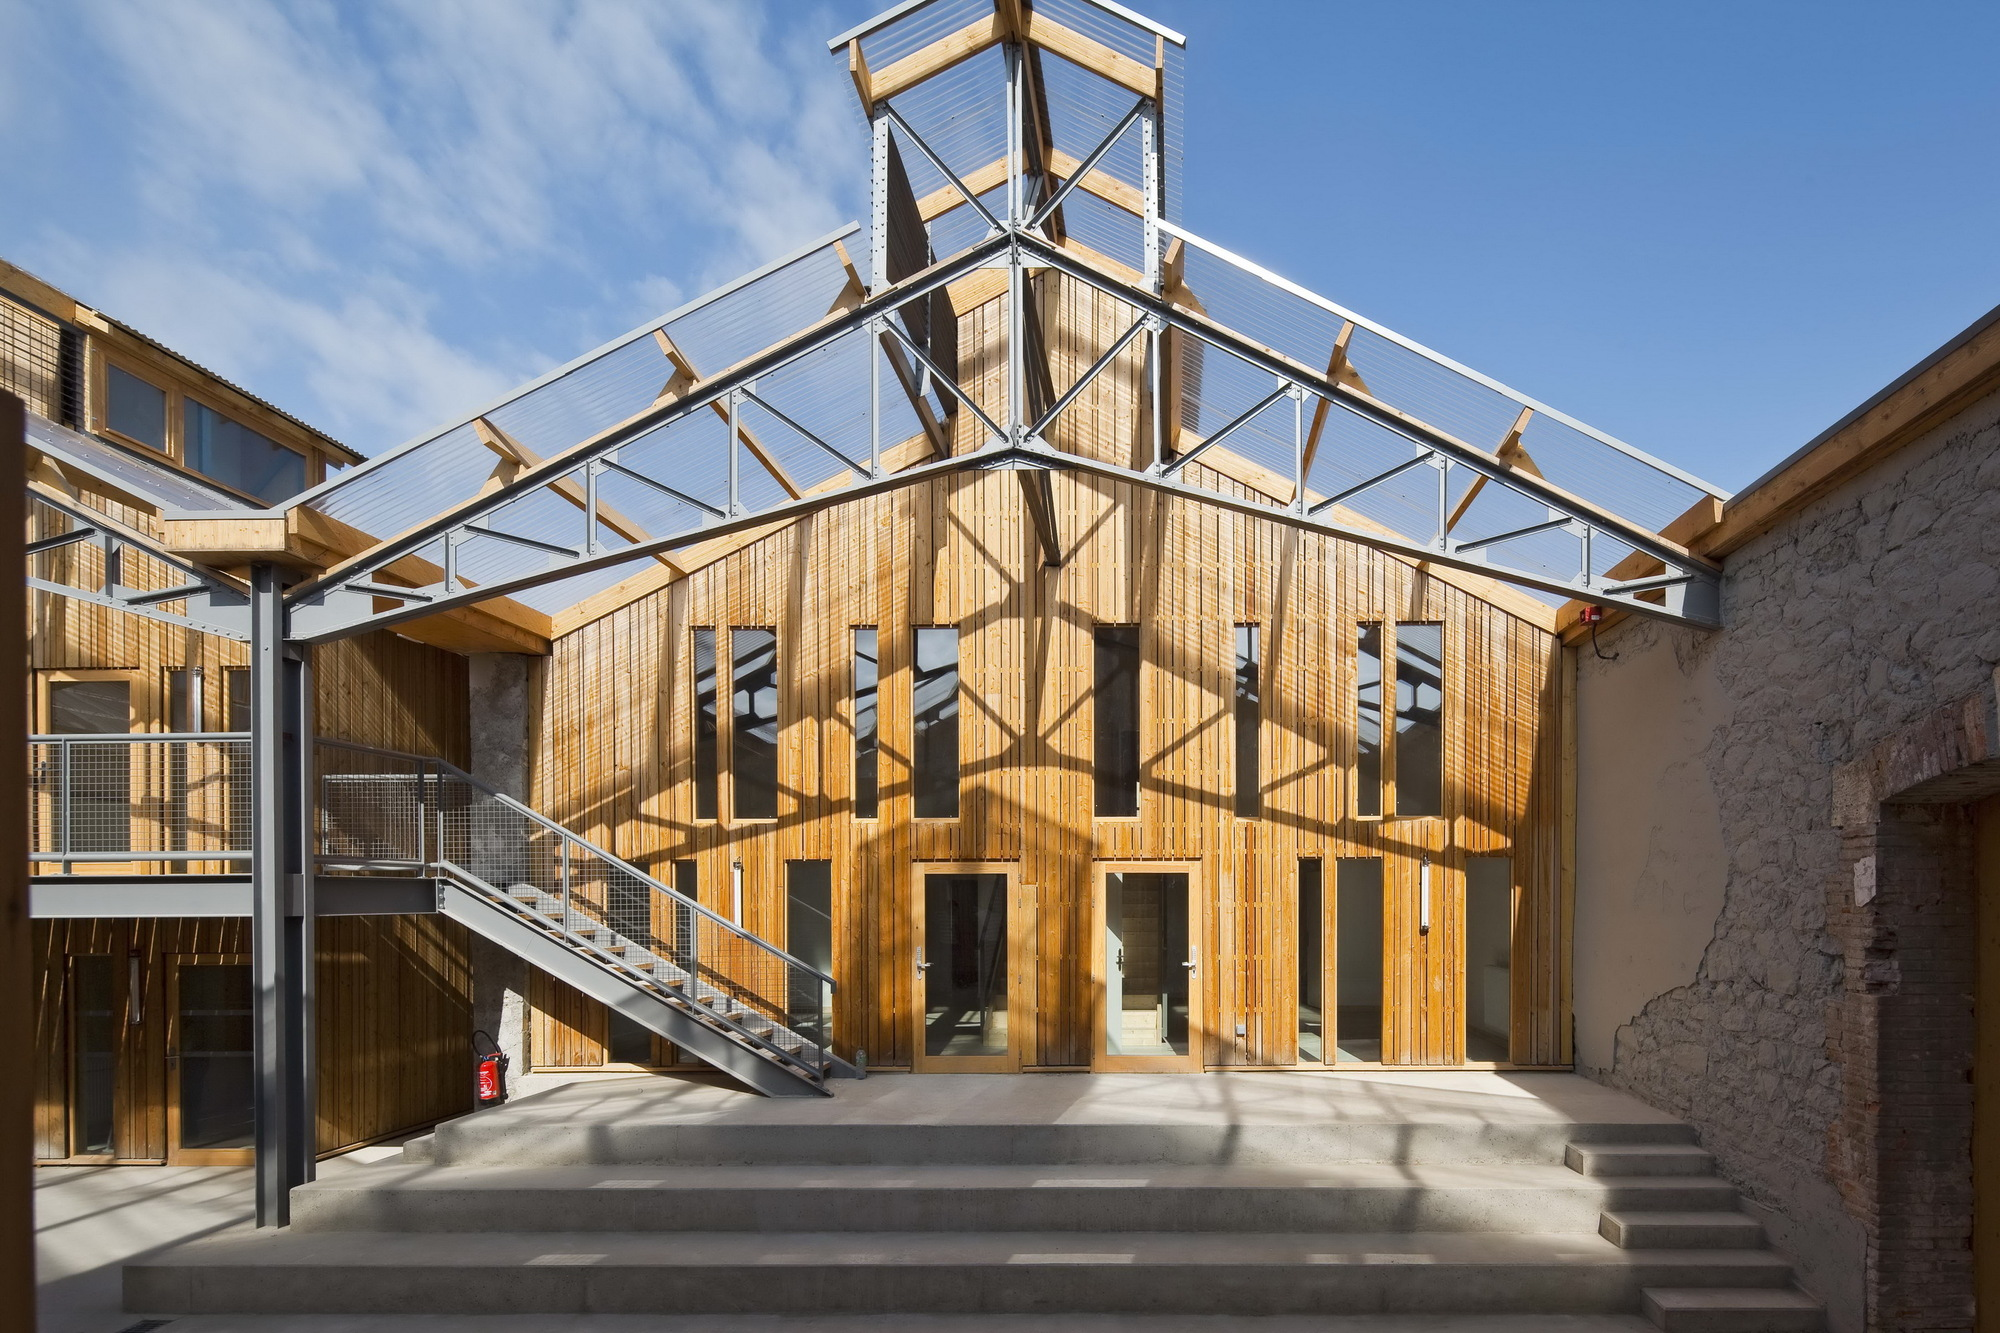 Circus Arts Conservatory / Adh Architects (21)